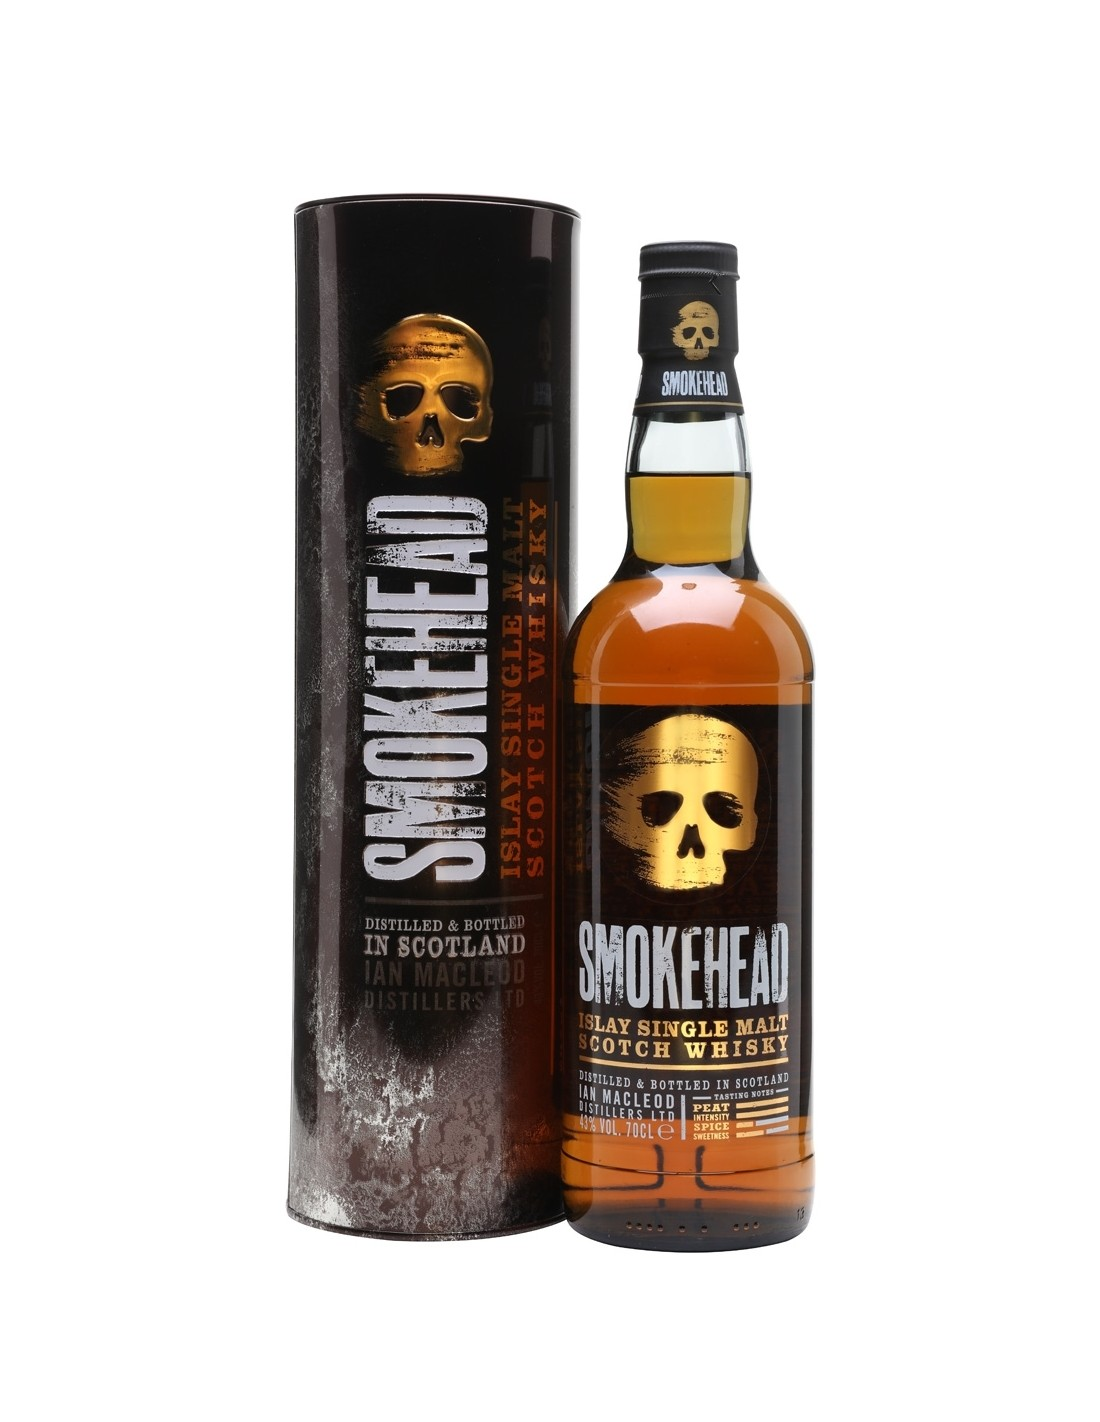 Whisky Smokehead Peated, 43% alc., 0.7L, Scotia